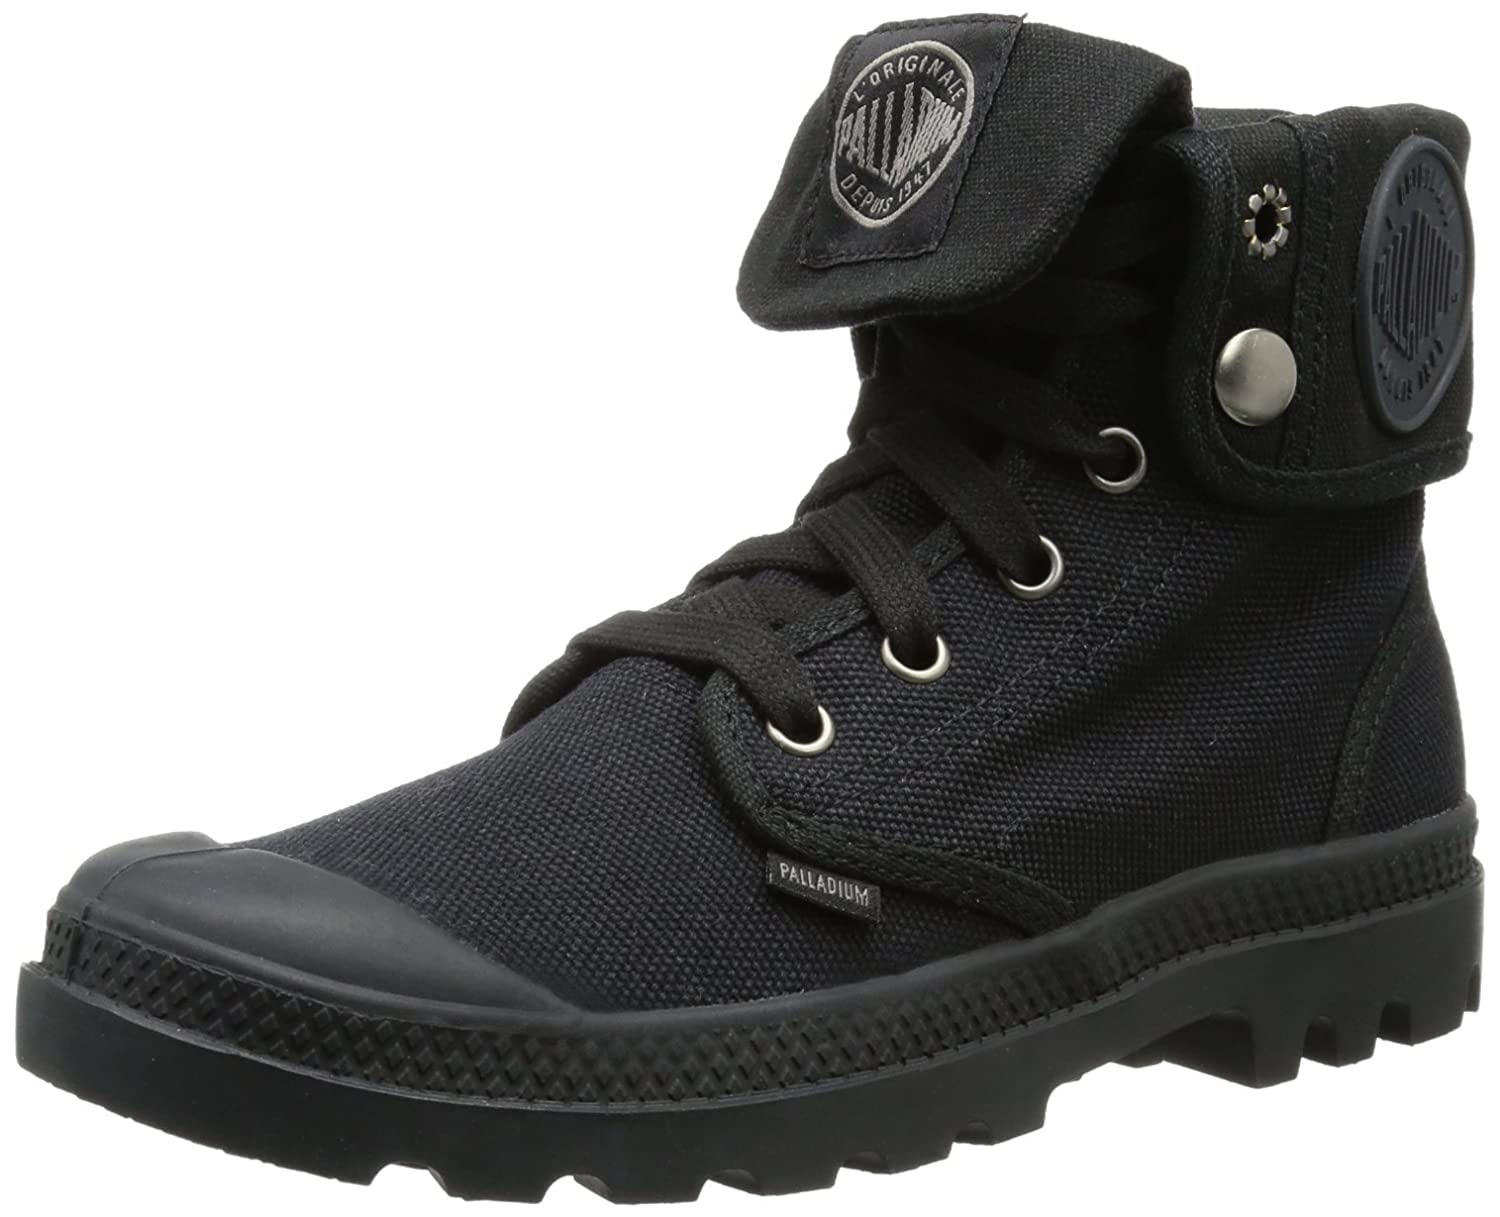 059a65fef Amazon.com | Palladium Boots Women's Baggy Canvas Boots | Fashion Sneakers